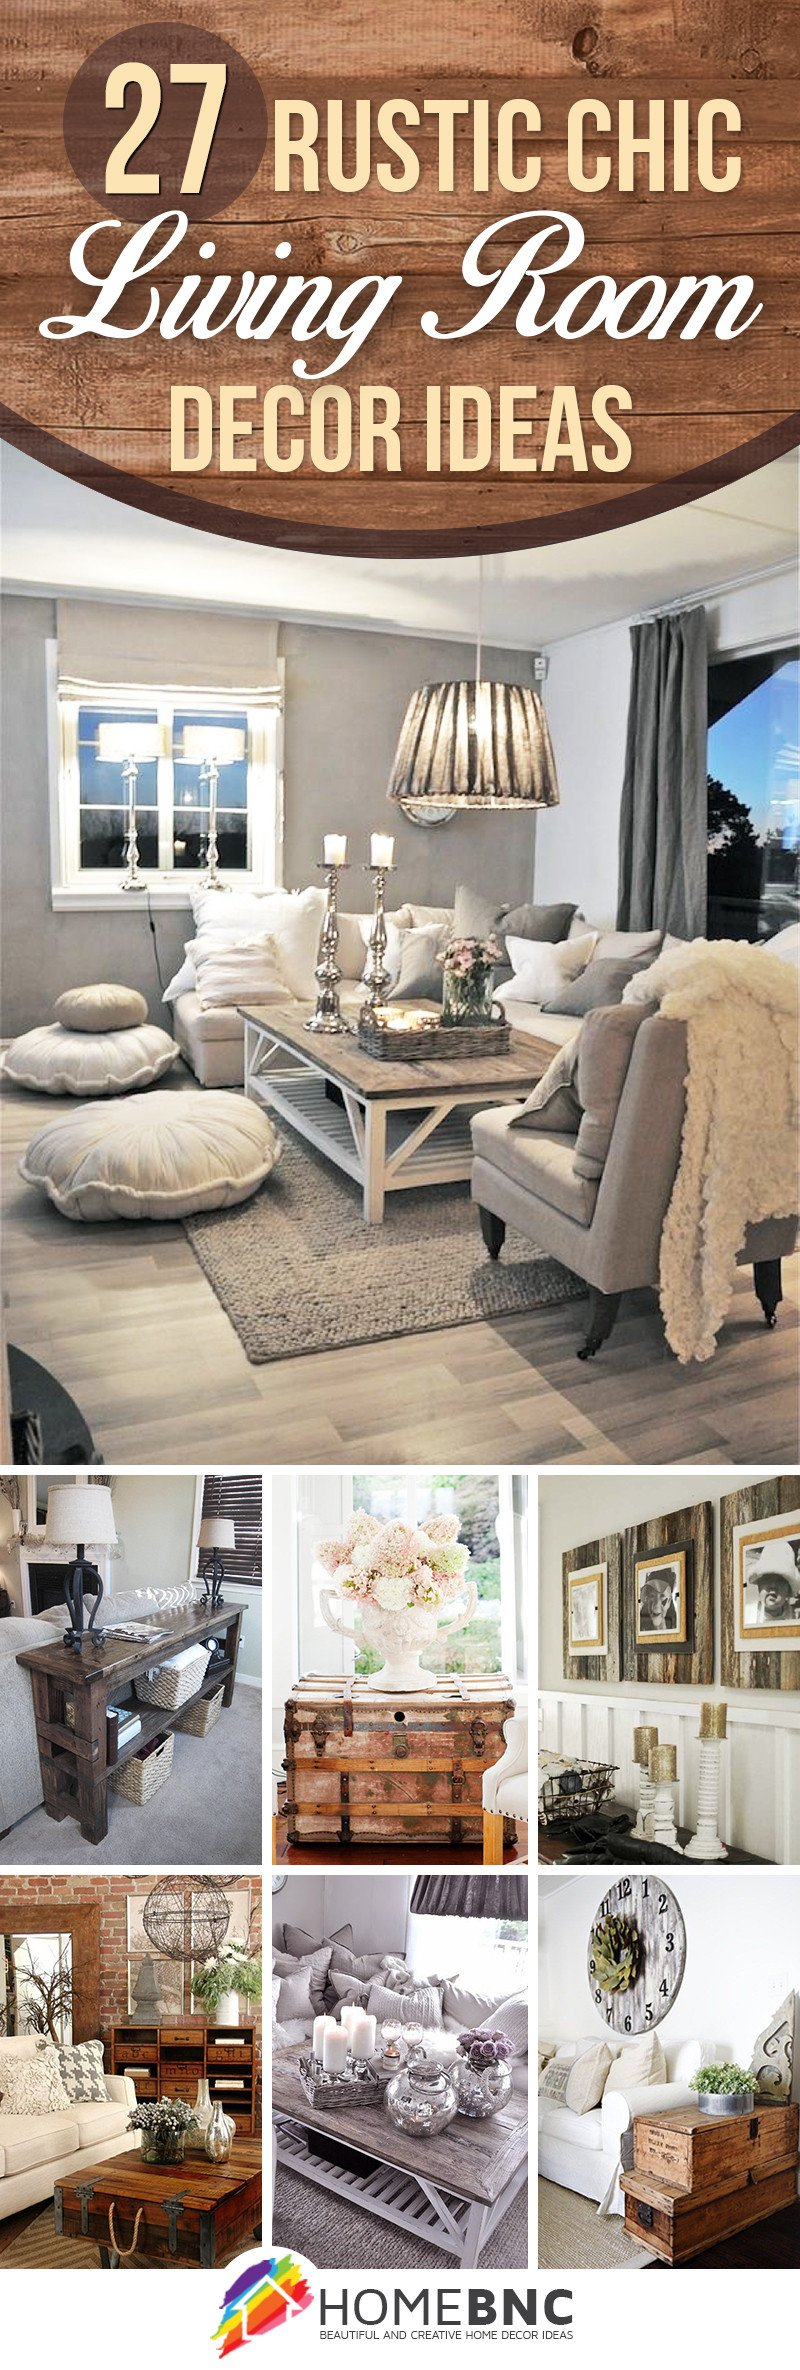 Chic Small Living Room Ideas Elegant 27 Best Rustic Chic Living Room Ideas and Designs for 2017